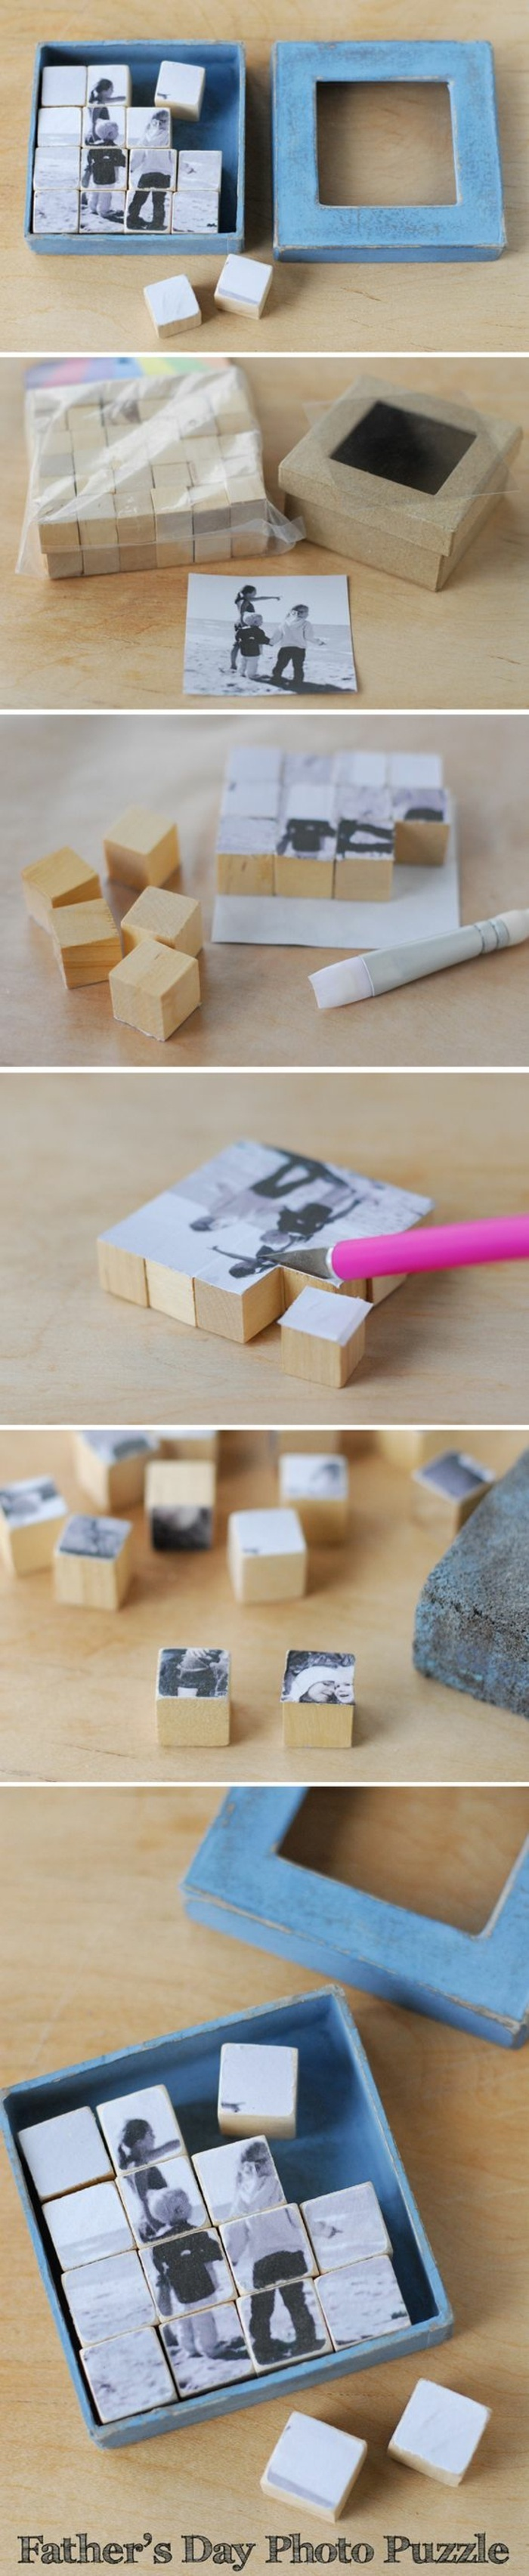 wooden blocks, photo puzzle, black and white photo, wooden box, crafts to do when bored